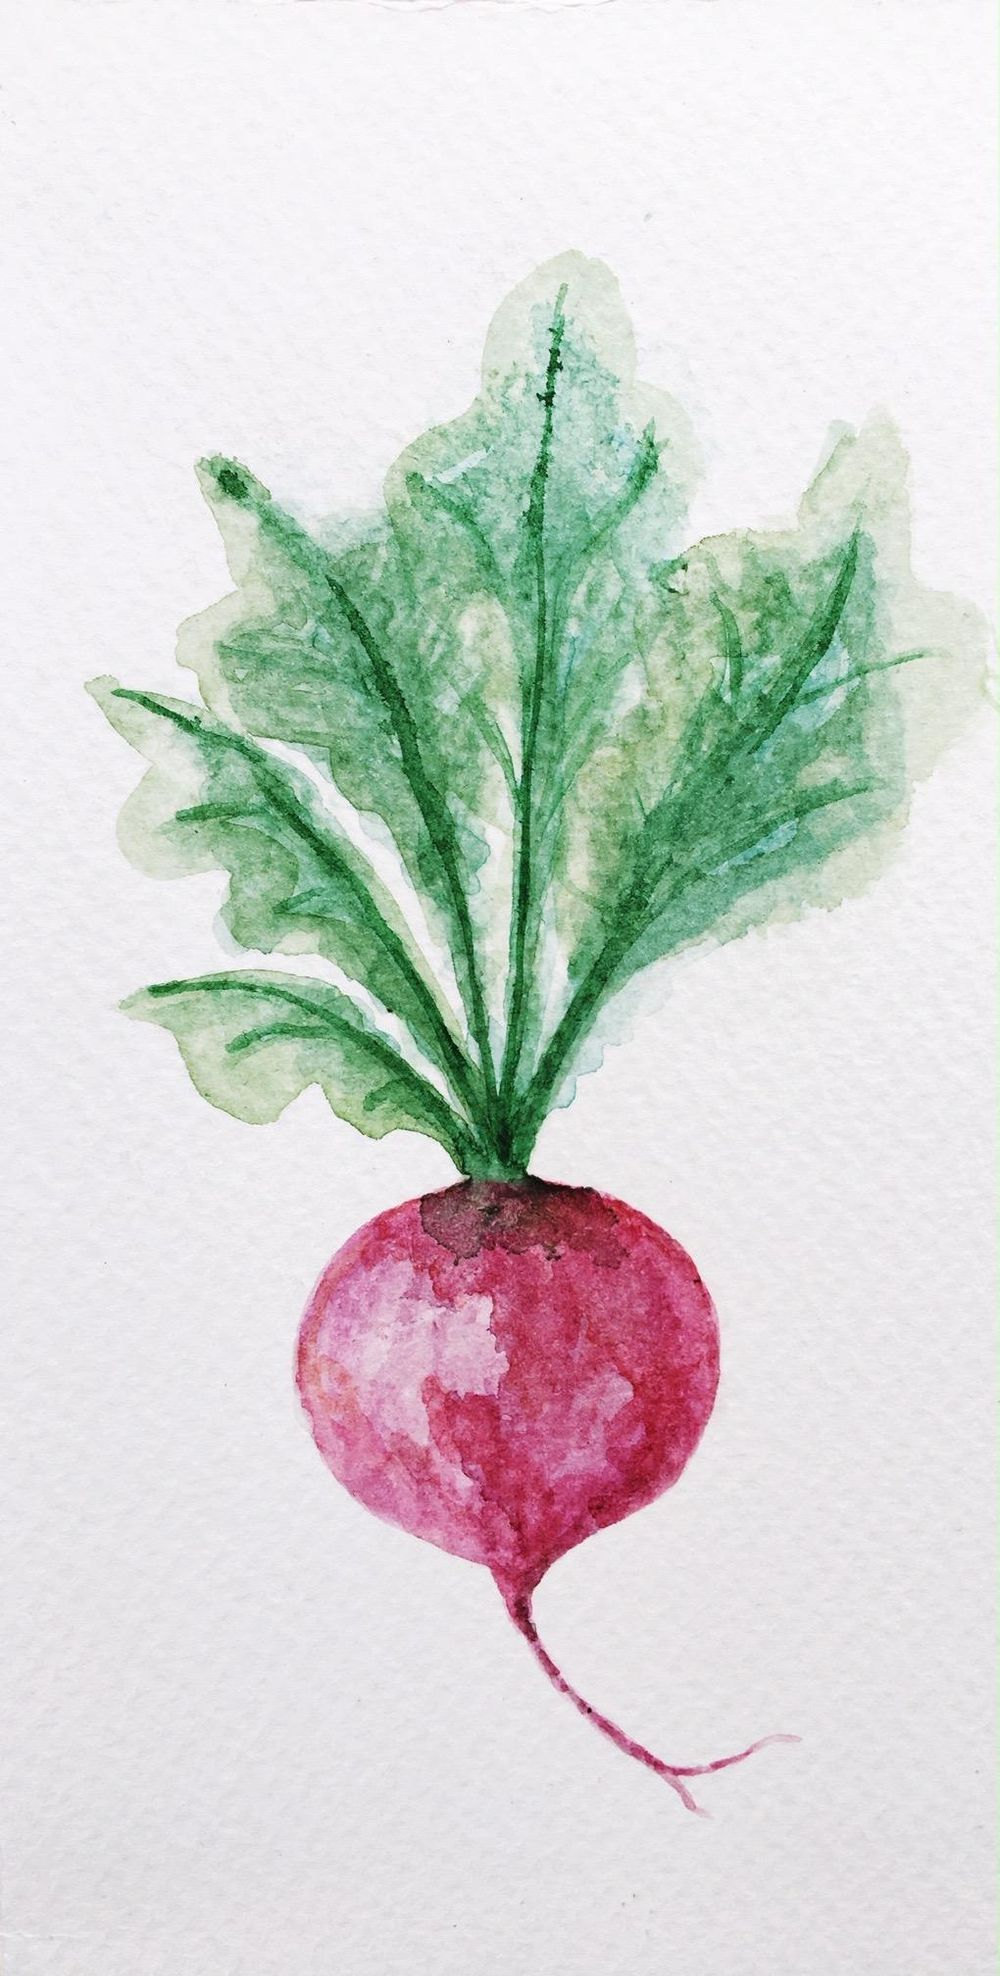 Painting veggies - image 2 - student project